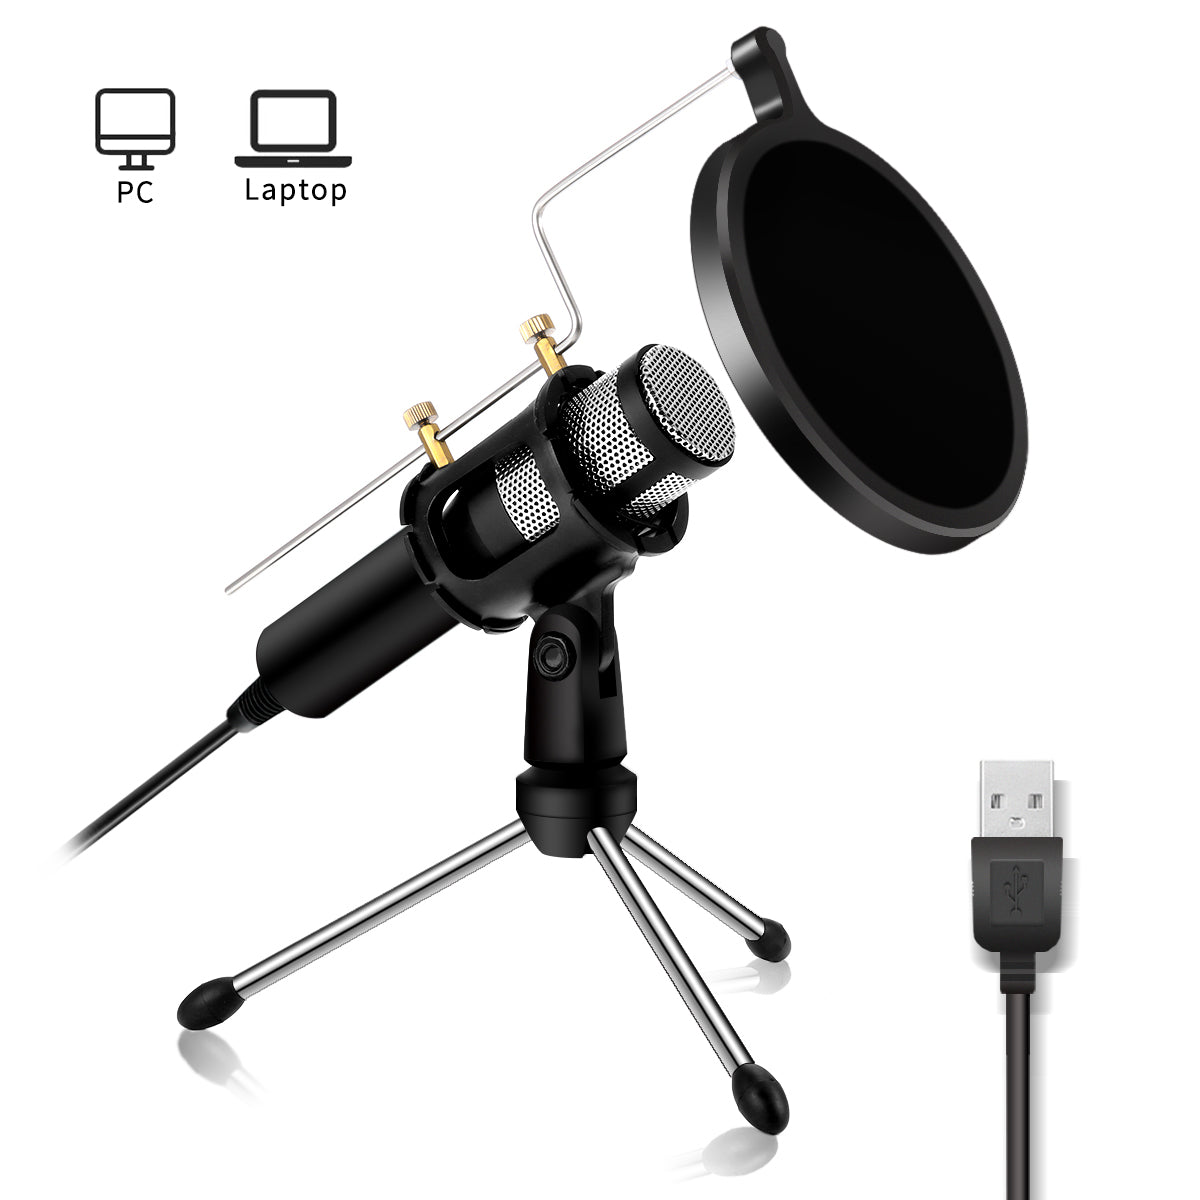 MicMX™ USB Condenser Mic USB Microphone For Vocals Recording Podcast Conference